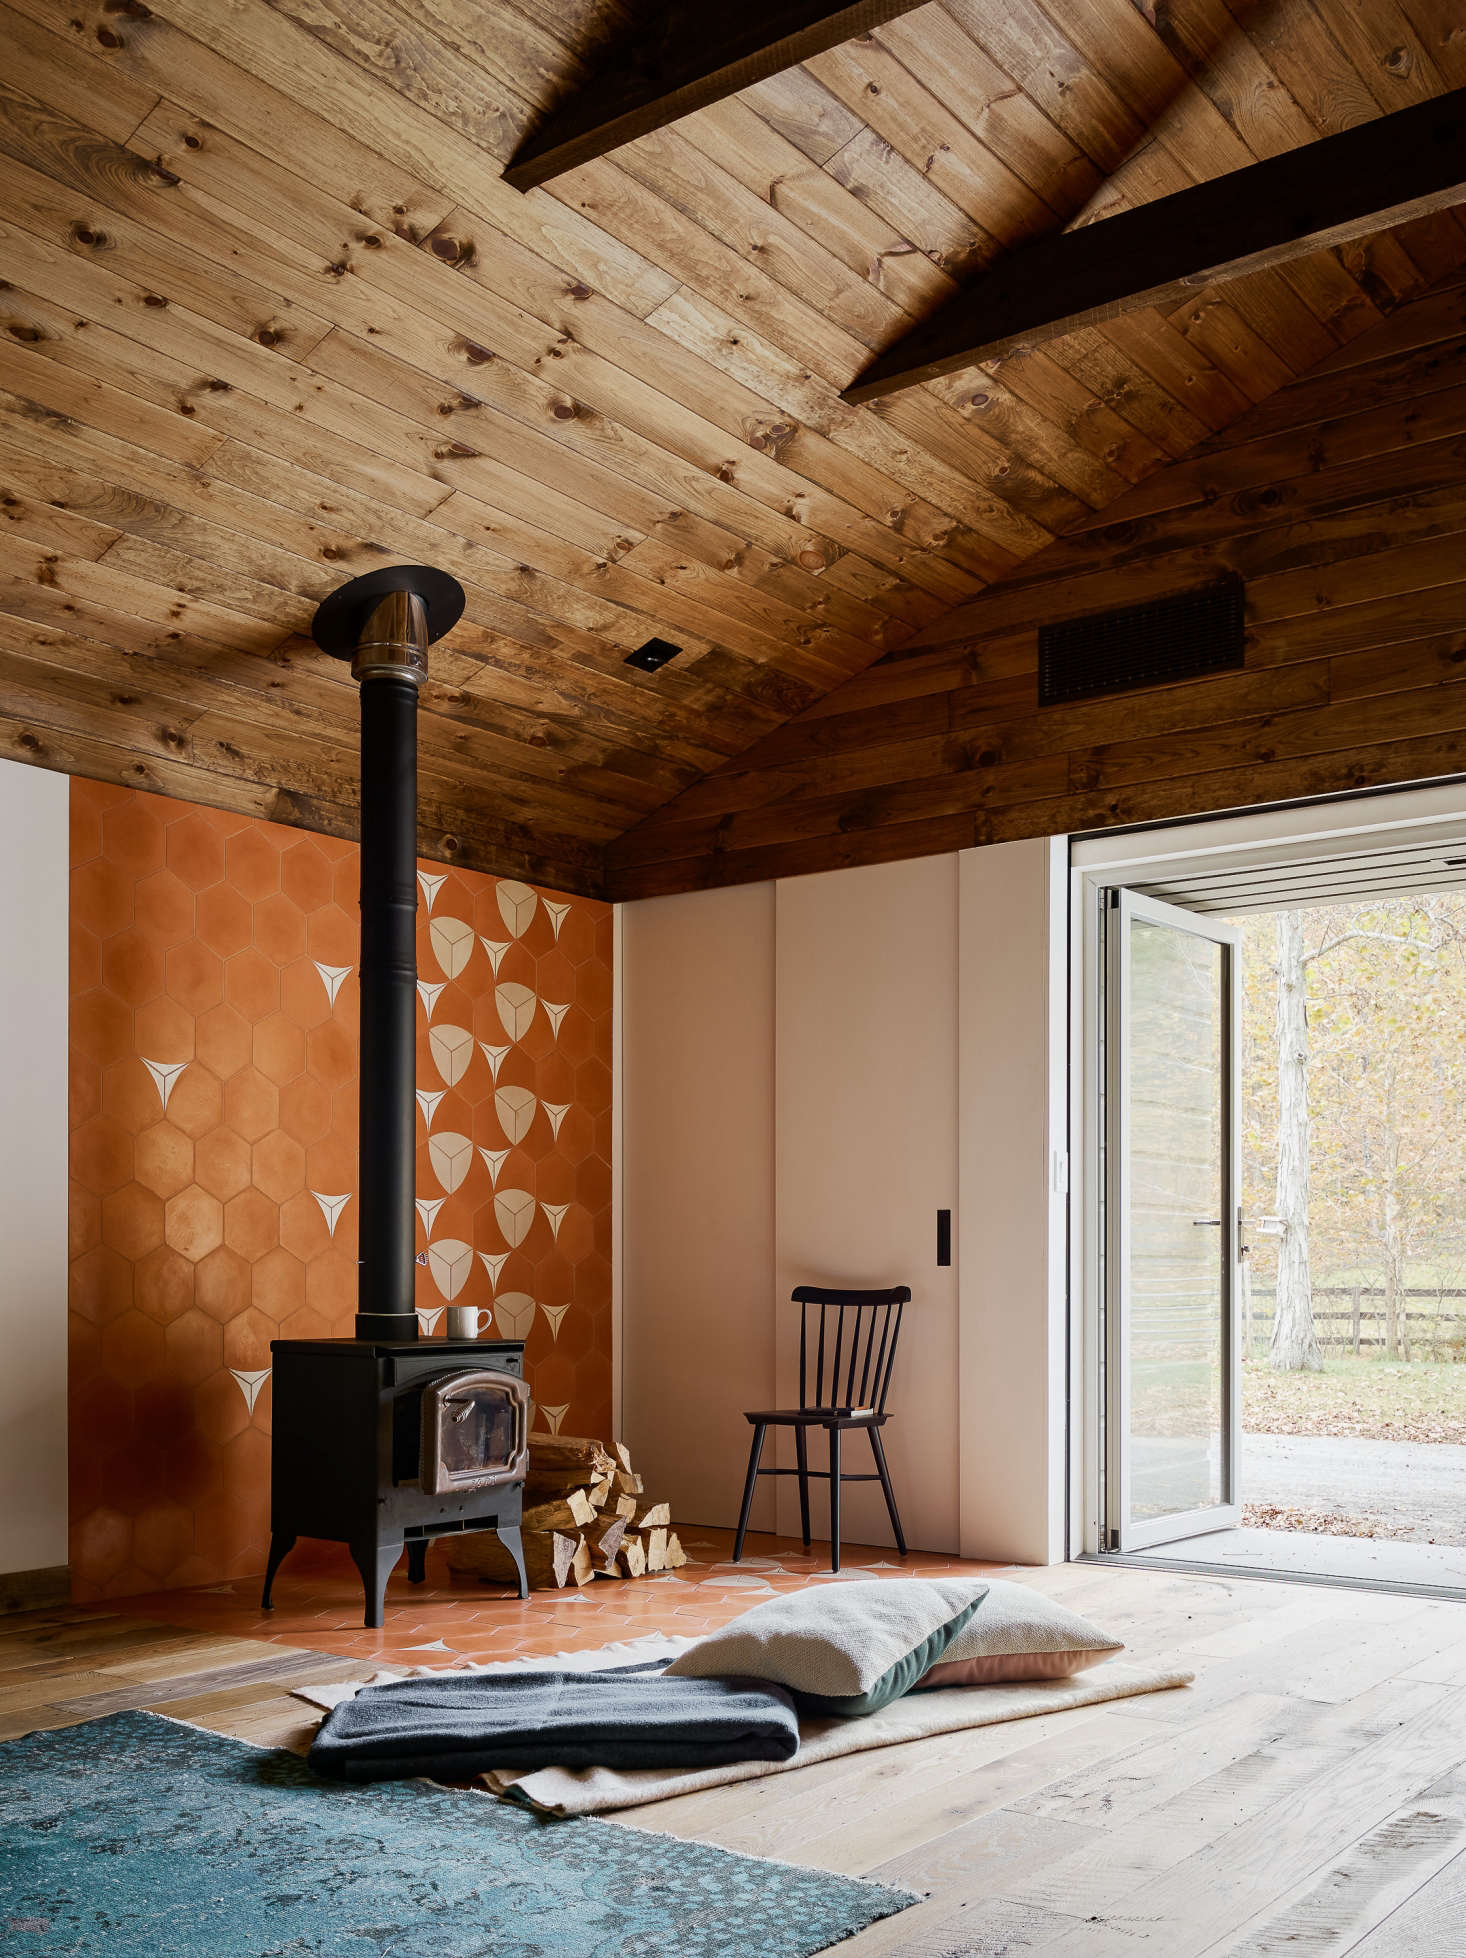 """Adjacent to the sitting area is a woodstove with a tiled back wall and floor. """"We used a bright pattern to define space around the fireplace,"""" said Zames, """"in order to bring in light while still keeping things open."""""""